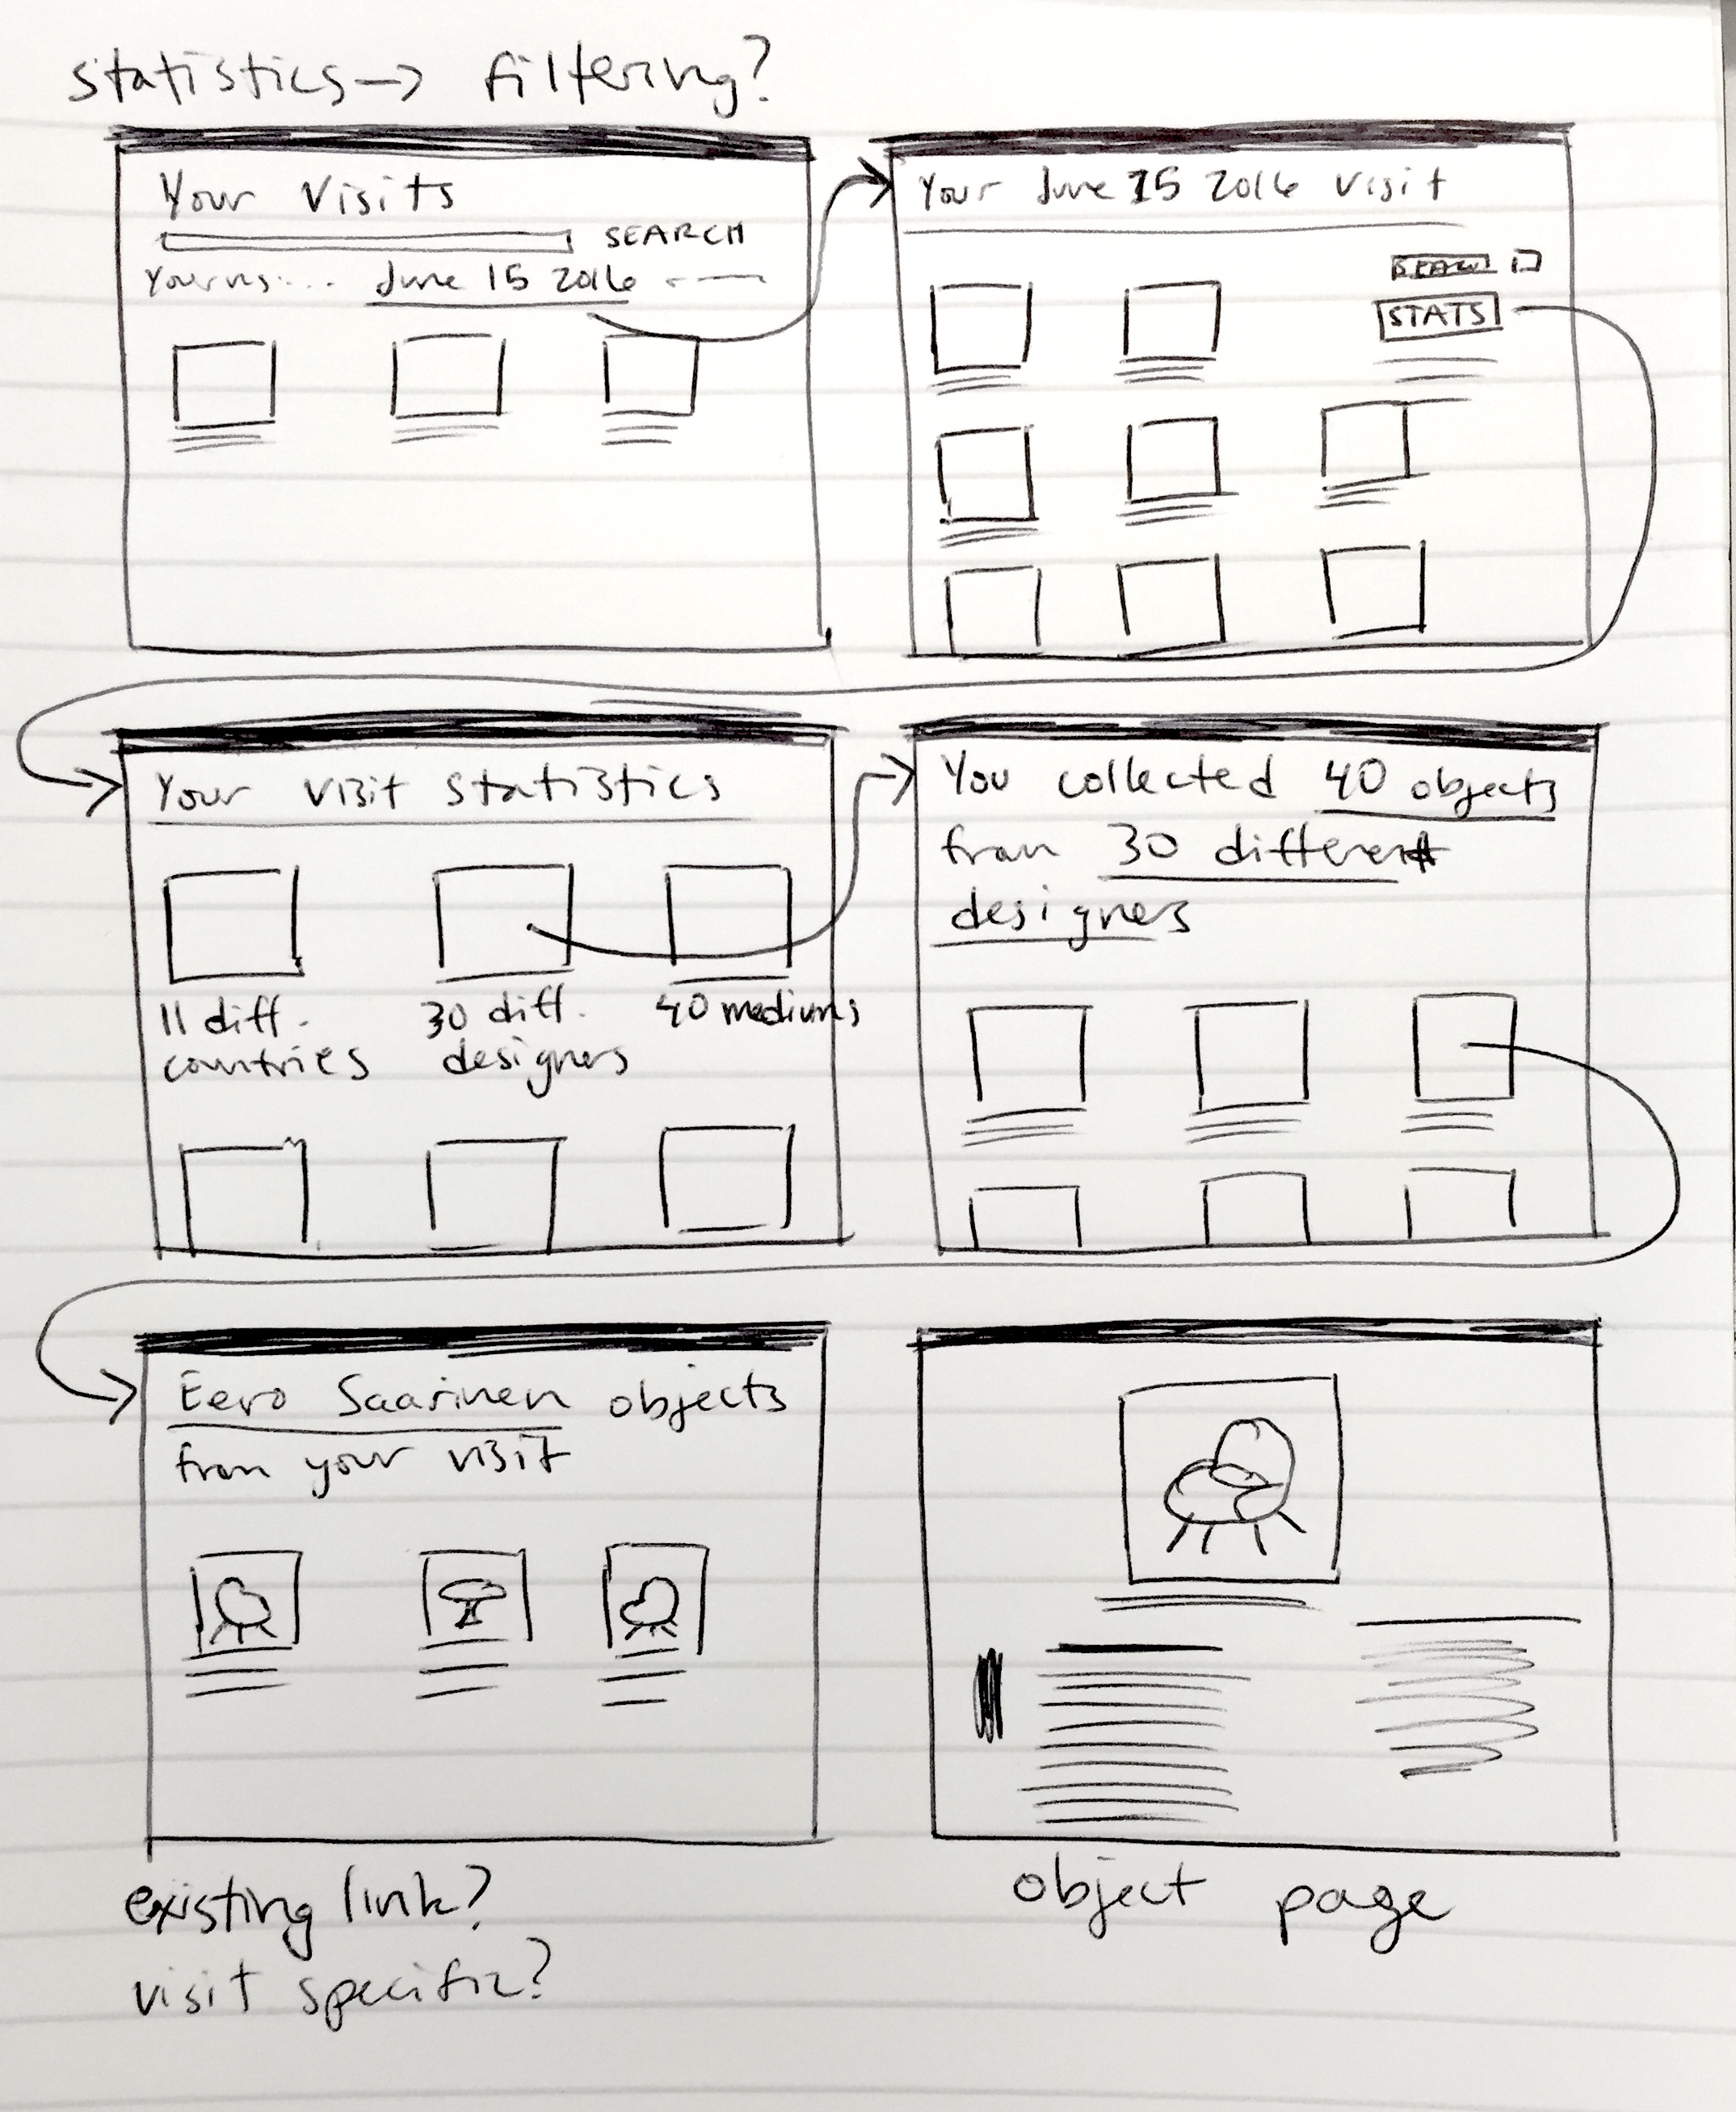 early user flow sketch of image based object filtering